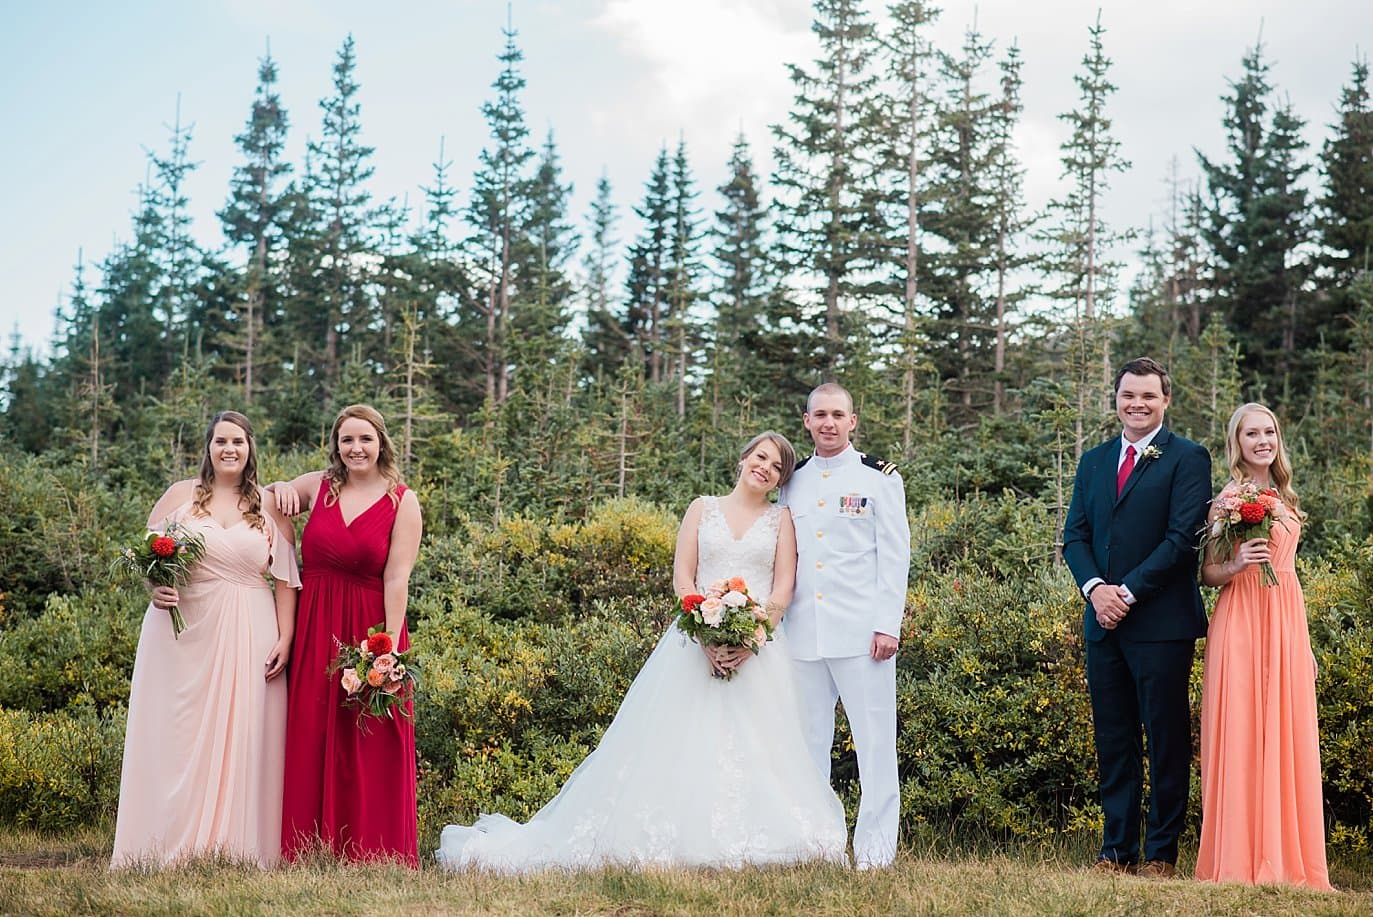 bridal party in shades of peach and navy at Colorado outdoor elopement